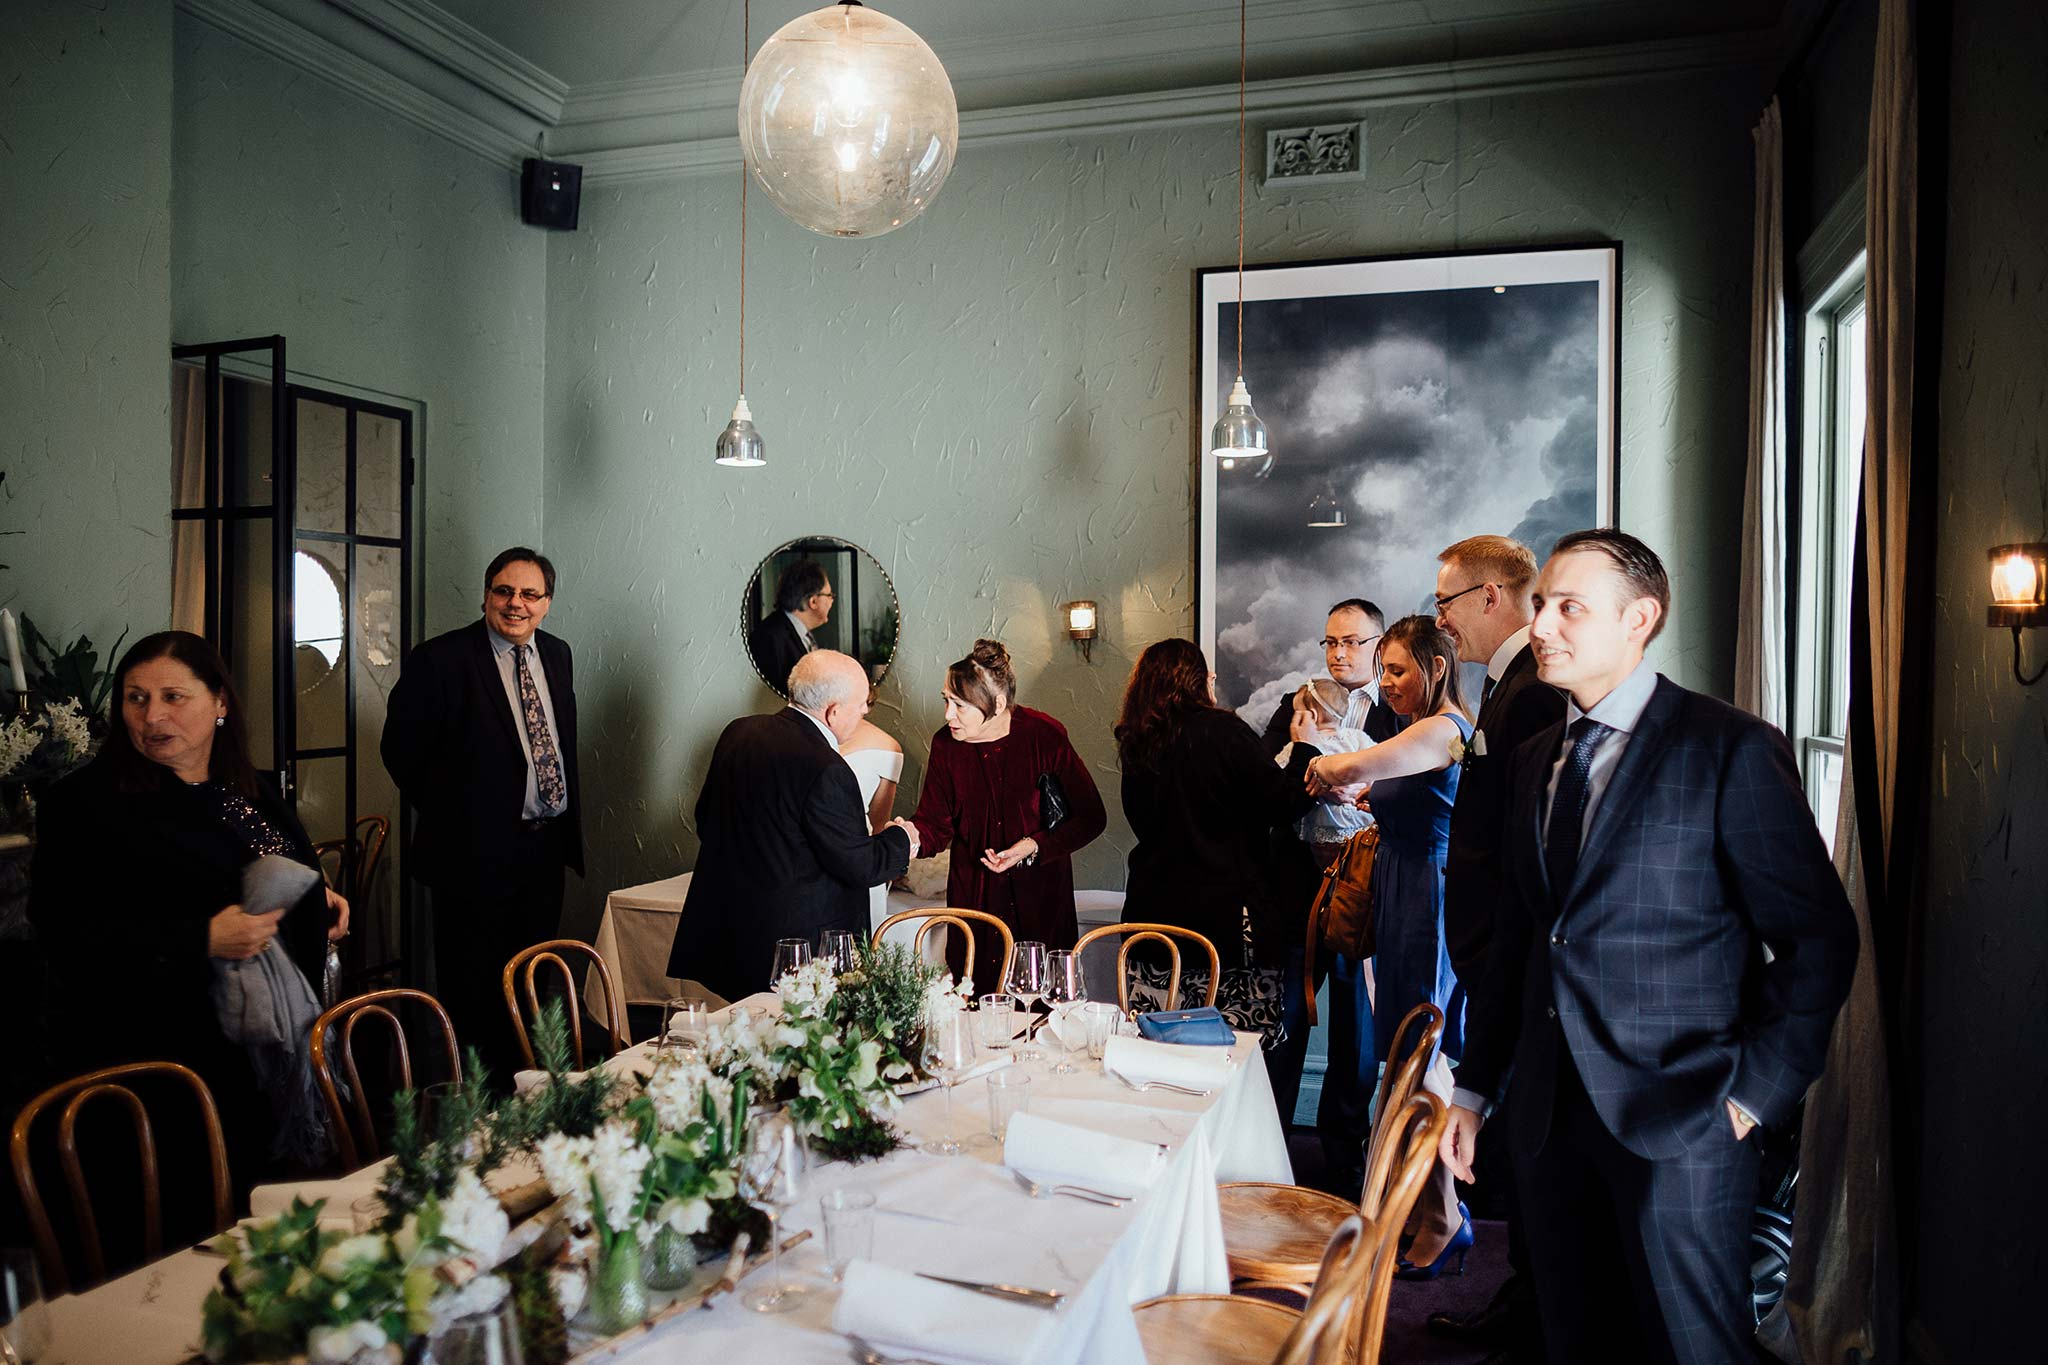 melbourne-entrecote-wedding-ceremony-guests-arrival